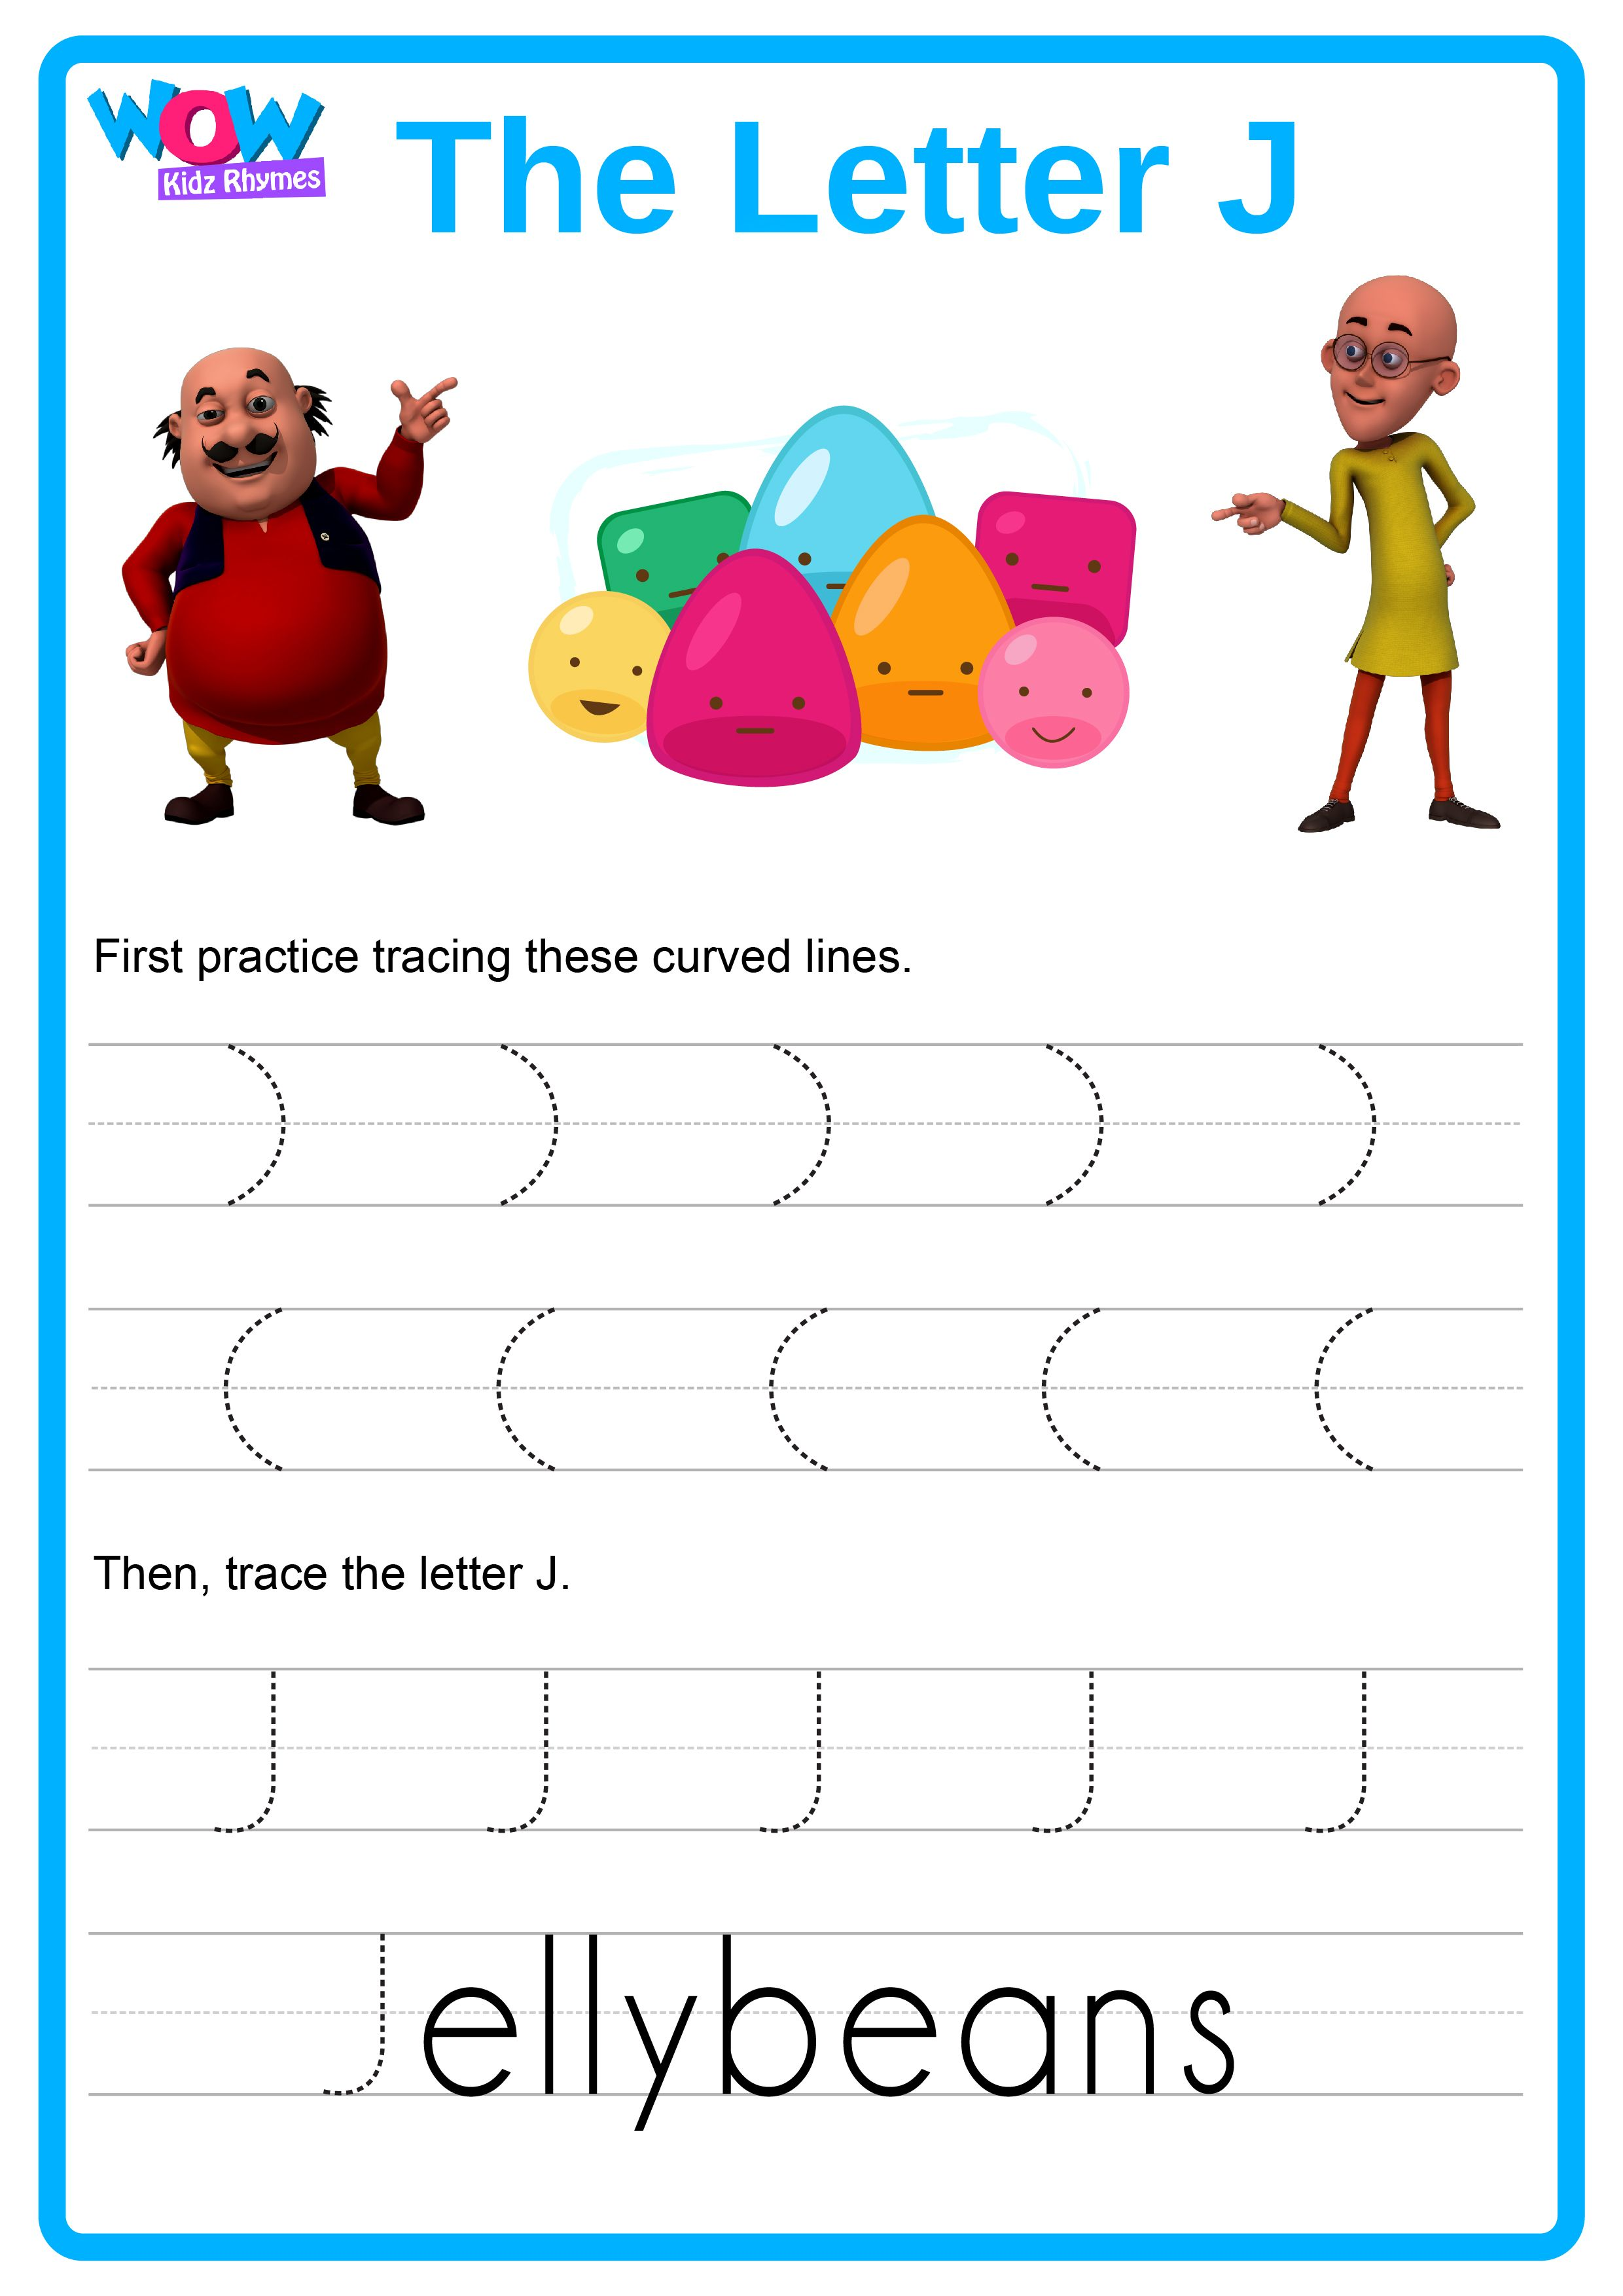 Motu Patlu Amp Jelly Beans Make A Great Combination For